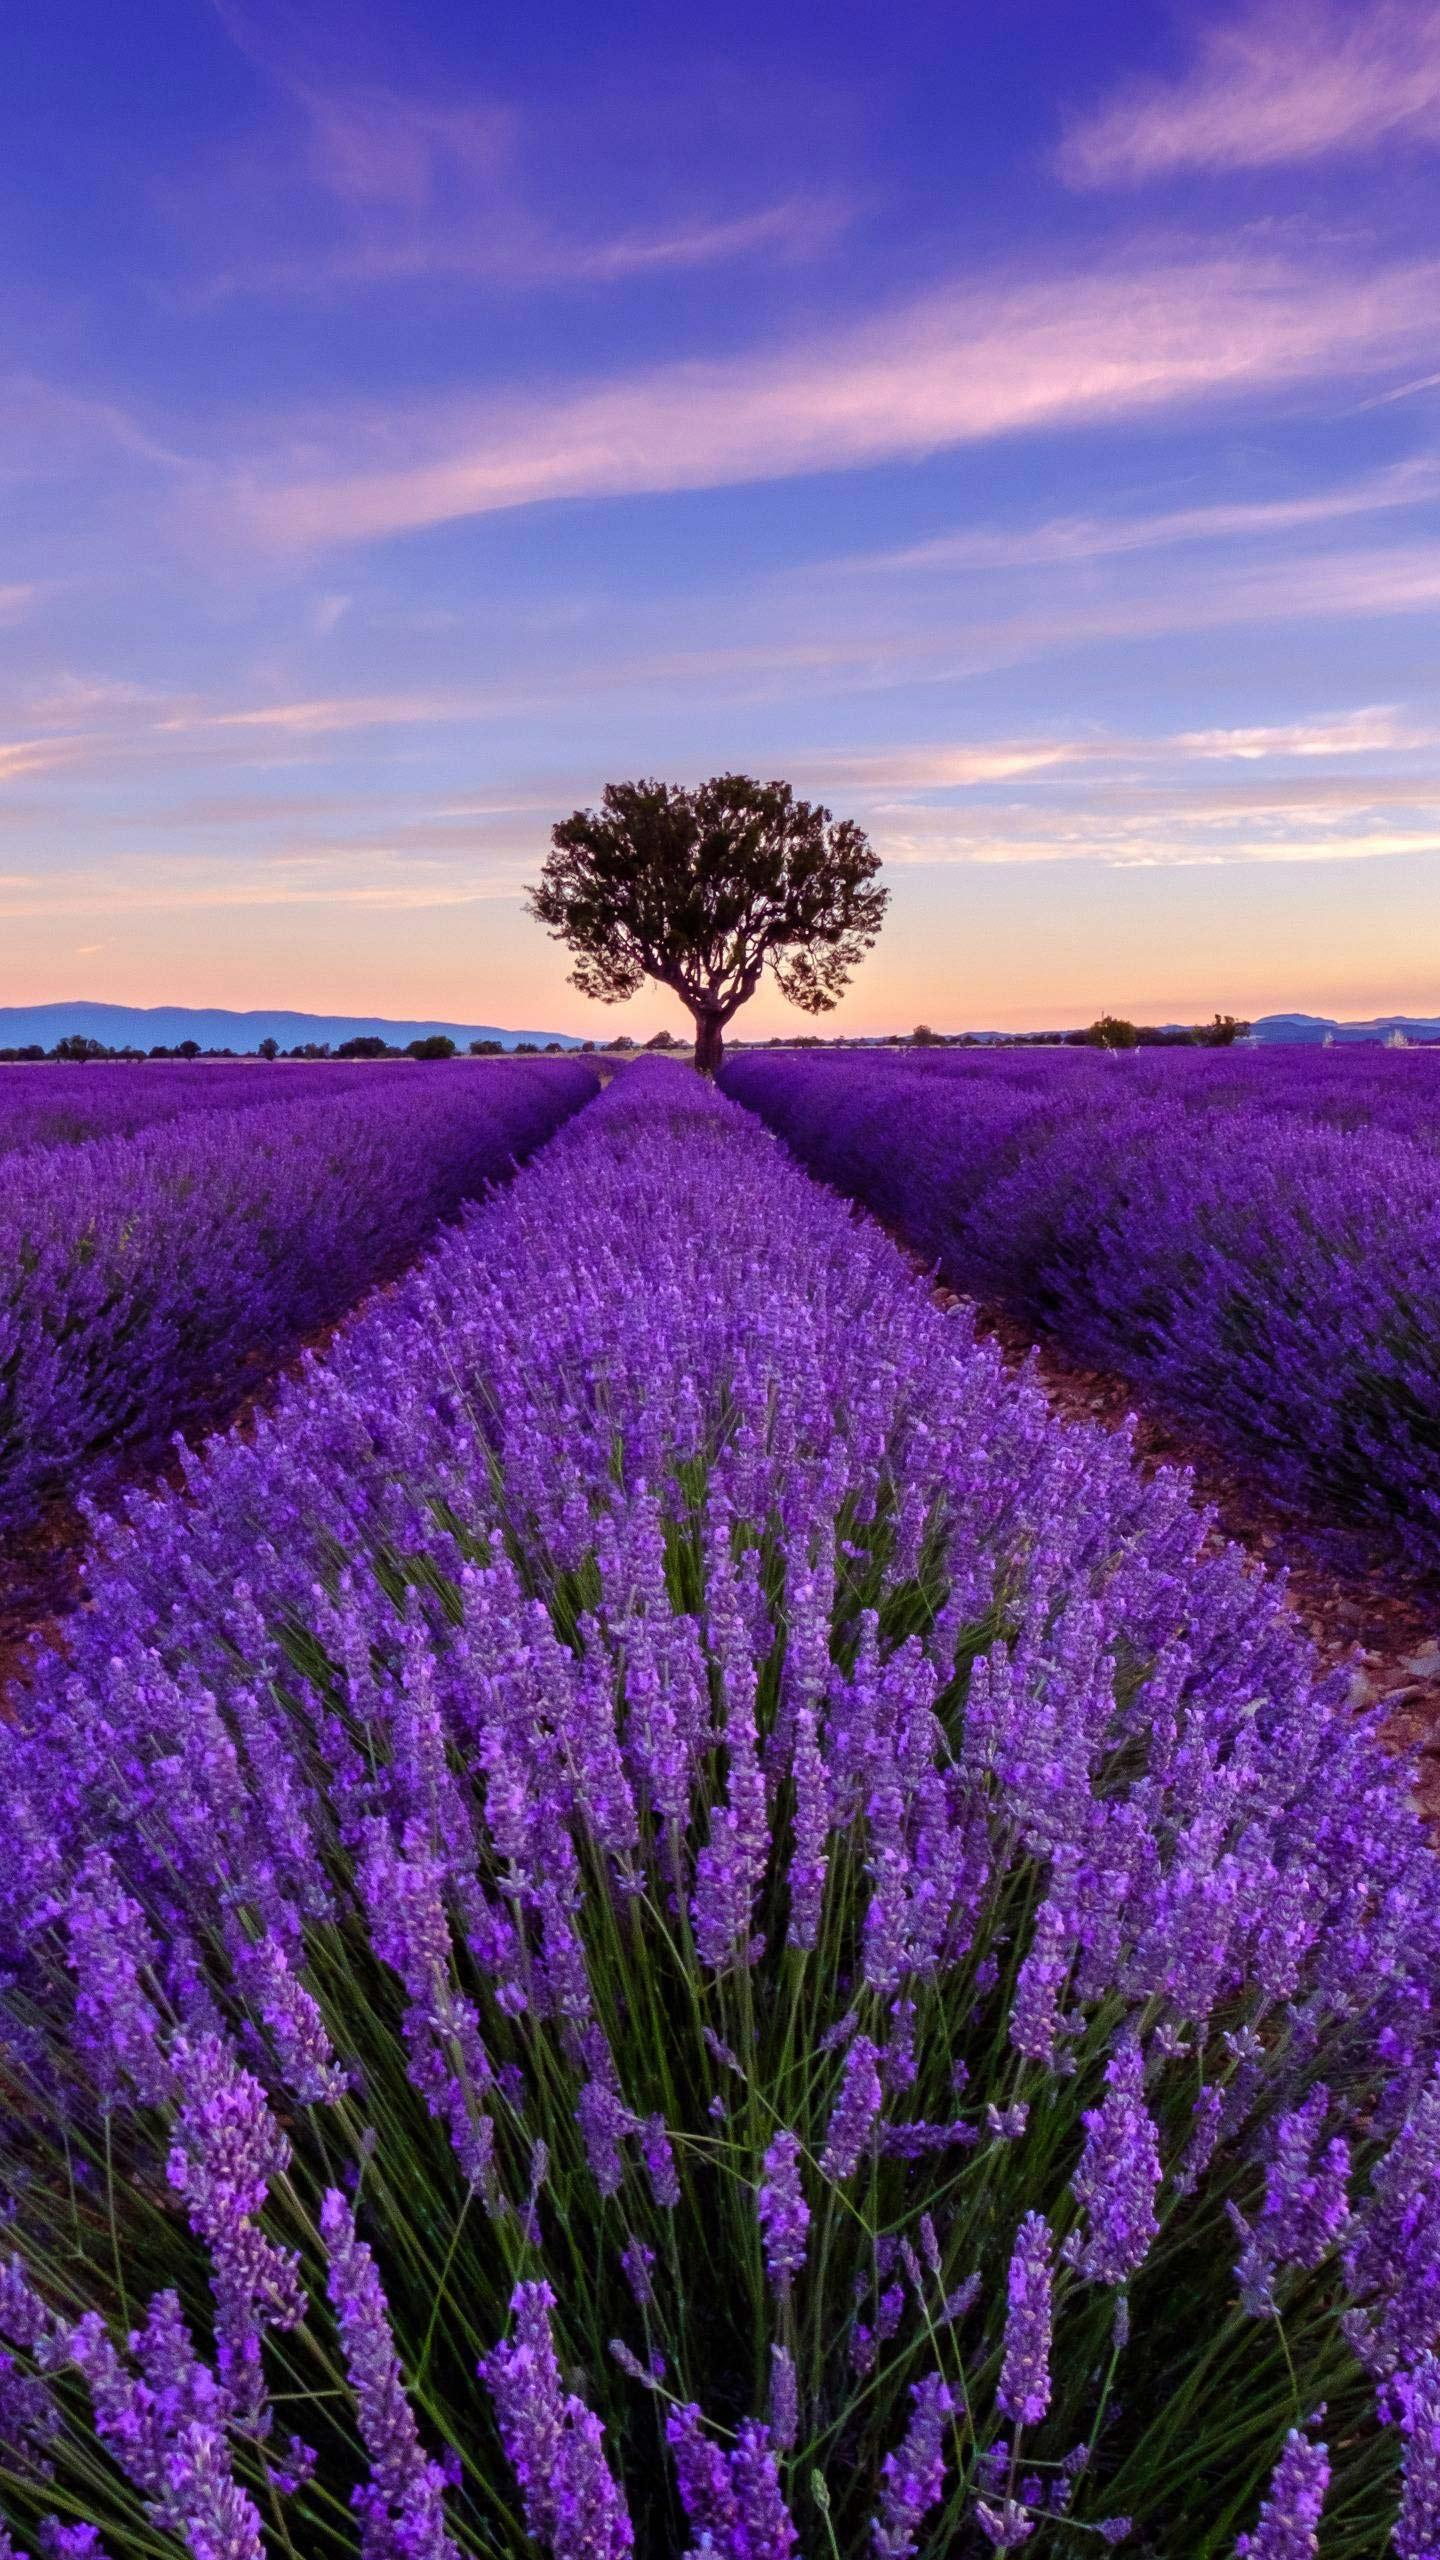 """Romantic Purple"" was drunk in the heart. Provence is the most desirable place in people's minds because of its unique charm and the romantic elements of lavender."